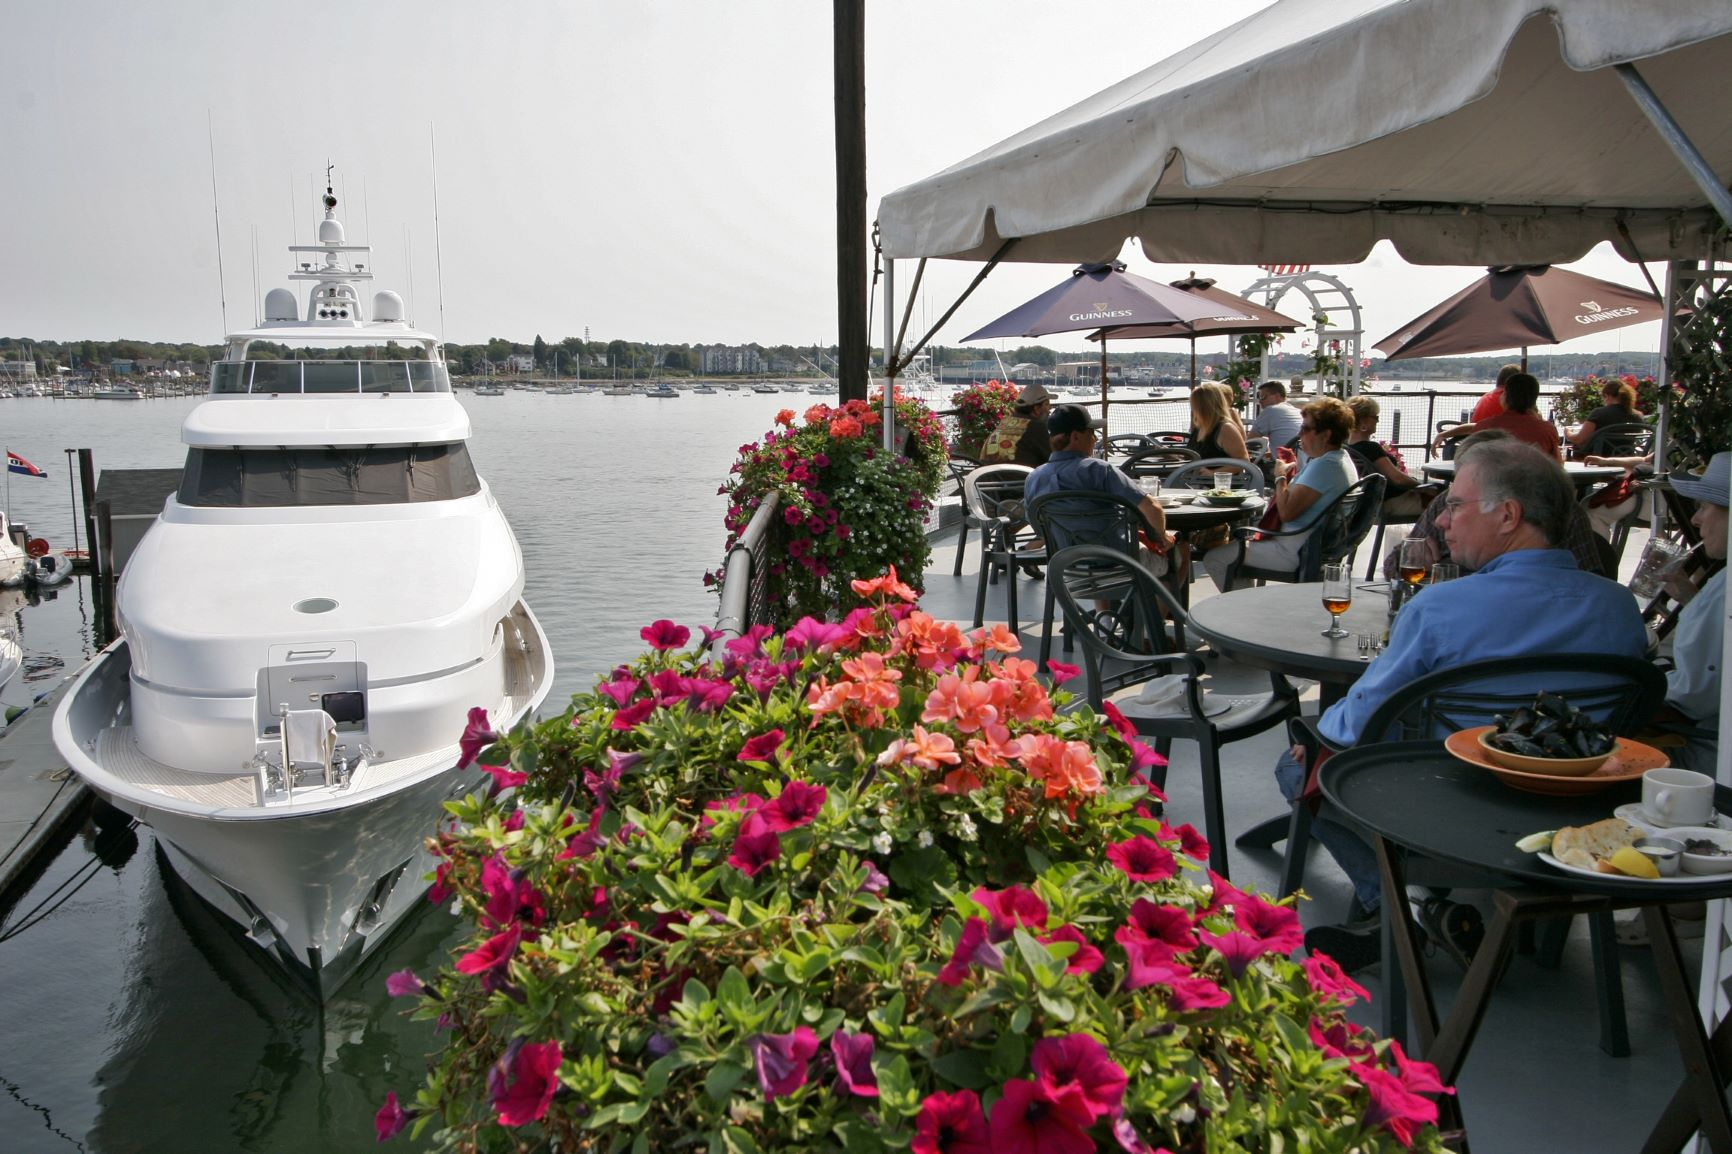 Deck dining at DiMillo's in Portland, ME. Photo credit: Johnny DiMillo.